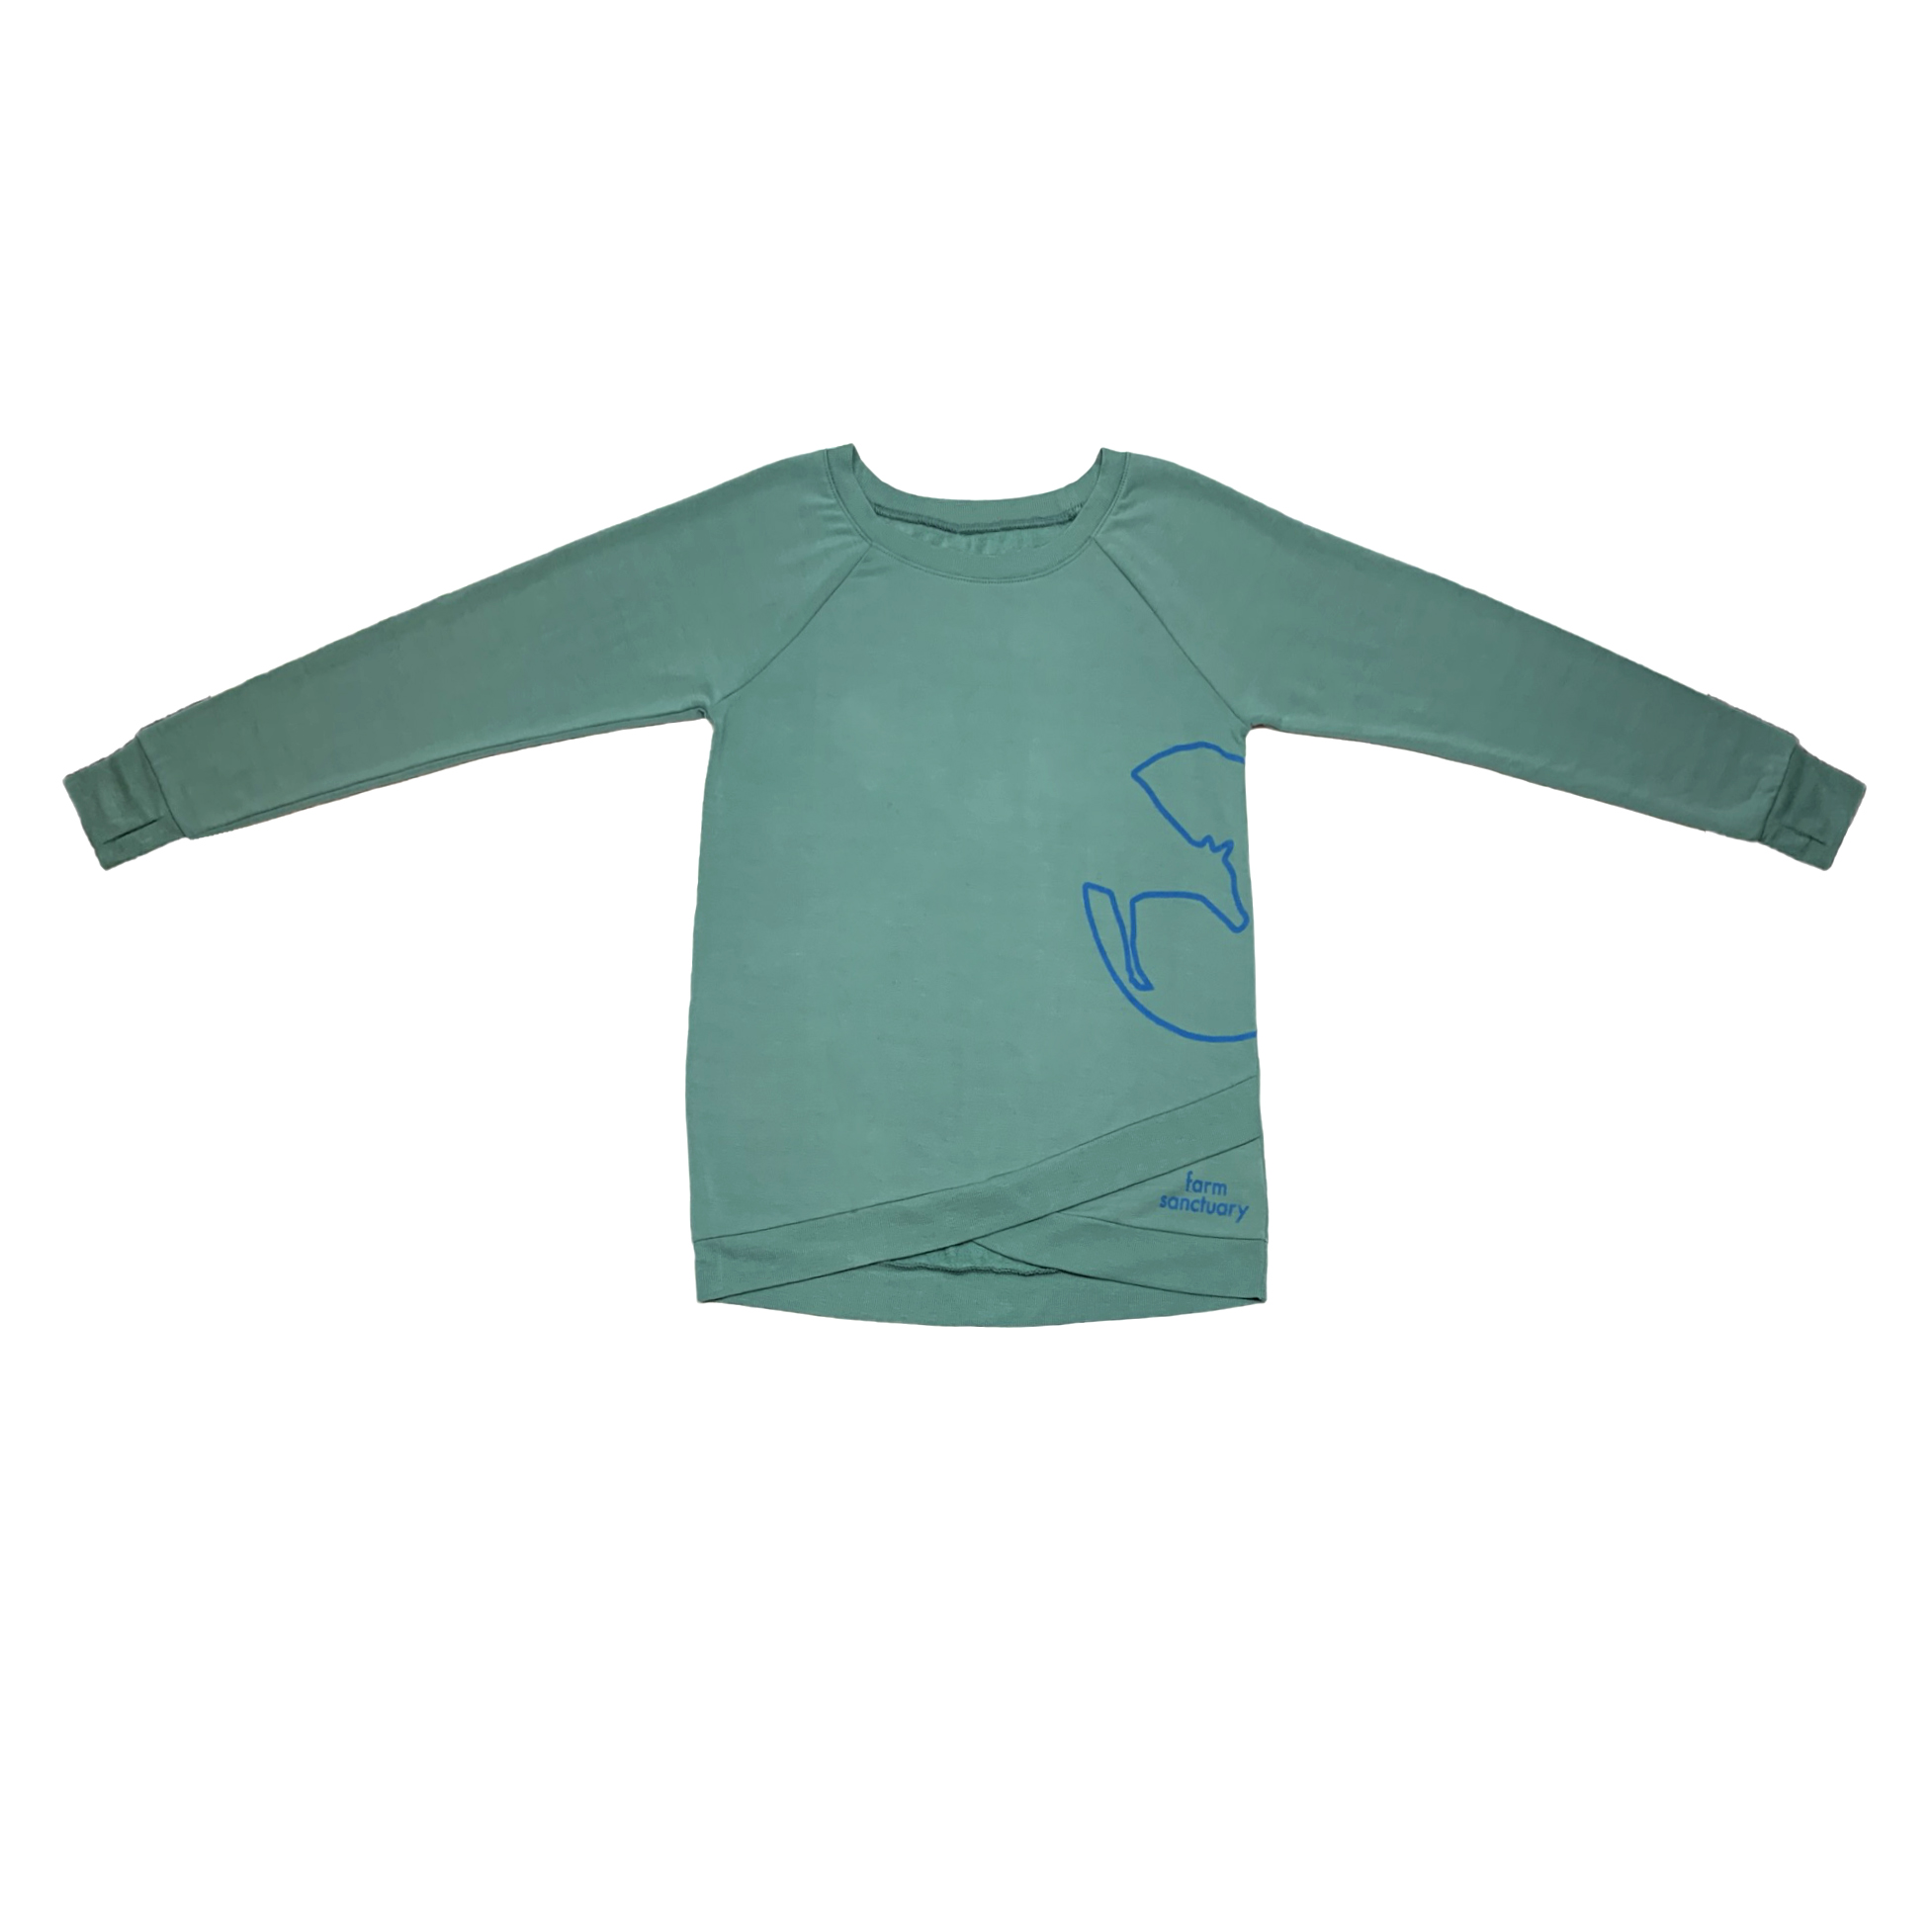 Blue-green long sleeve tunic with a scalloped bottom and the Farm Sanctuary logo on the side